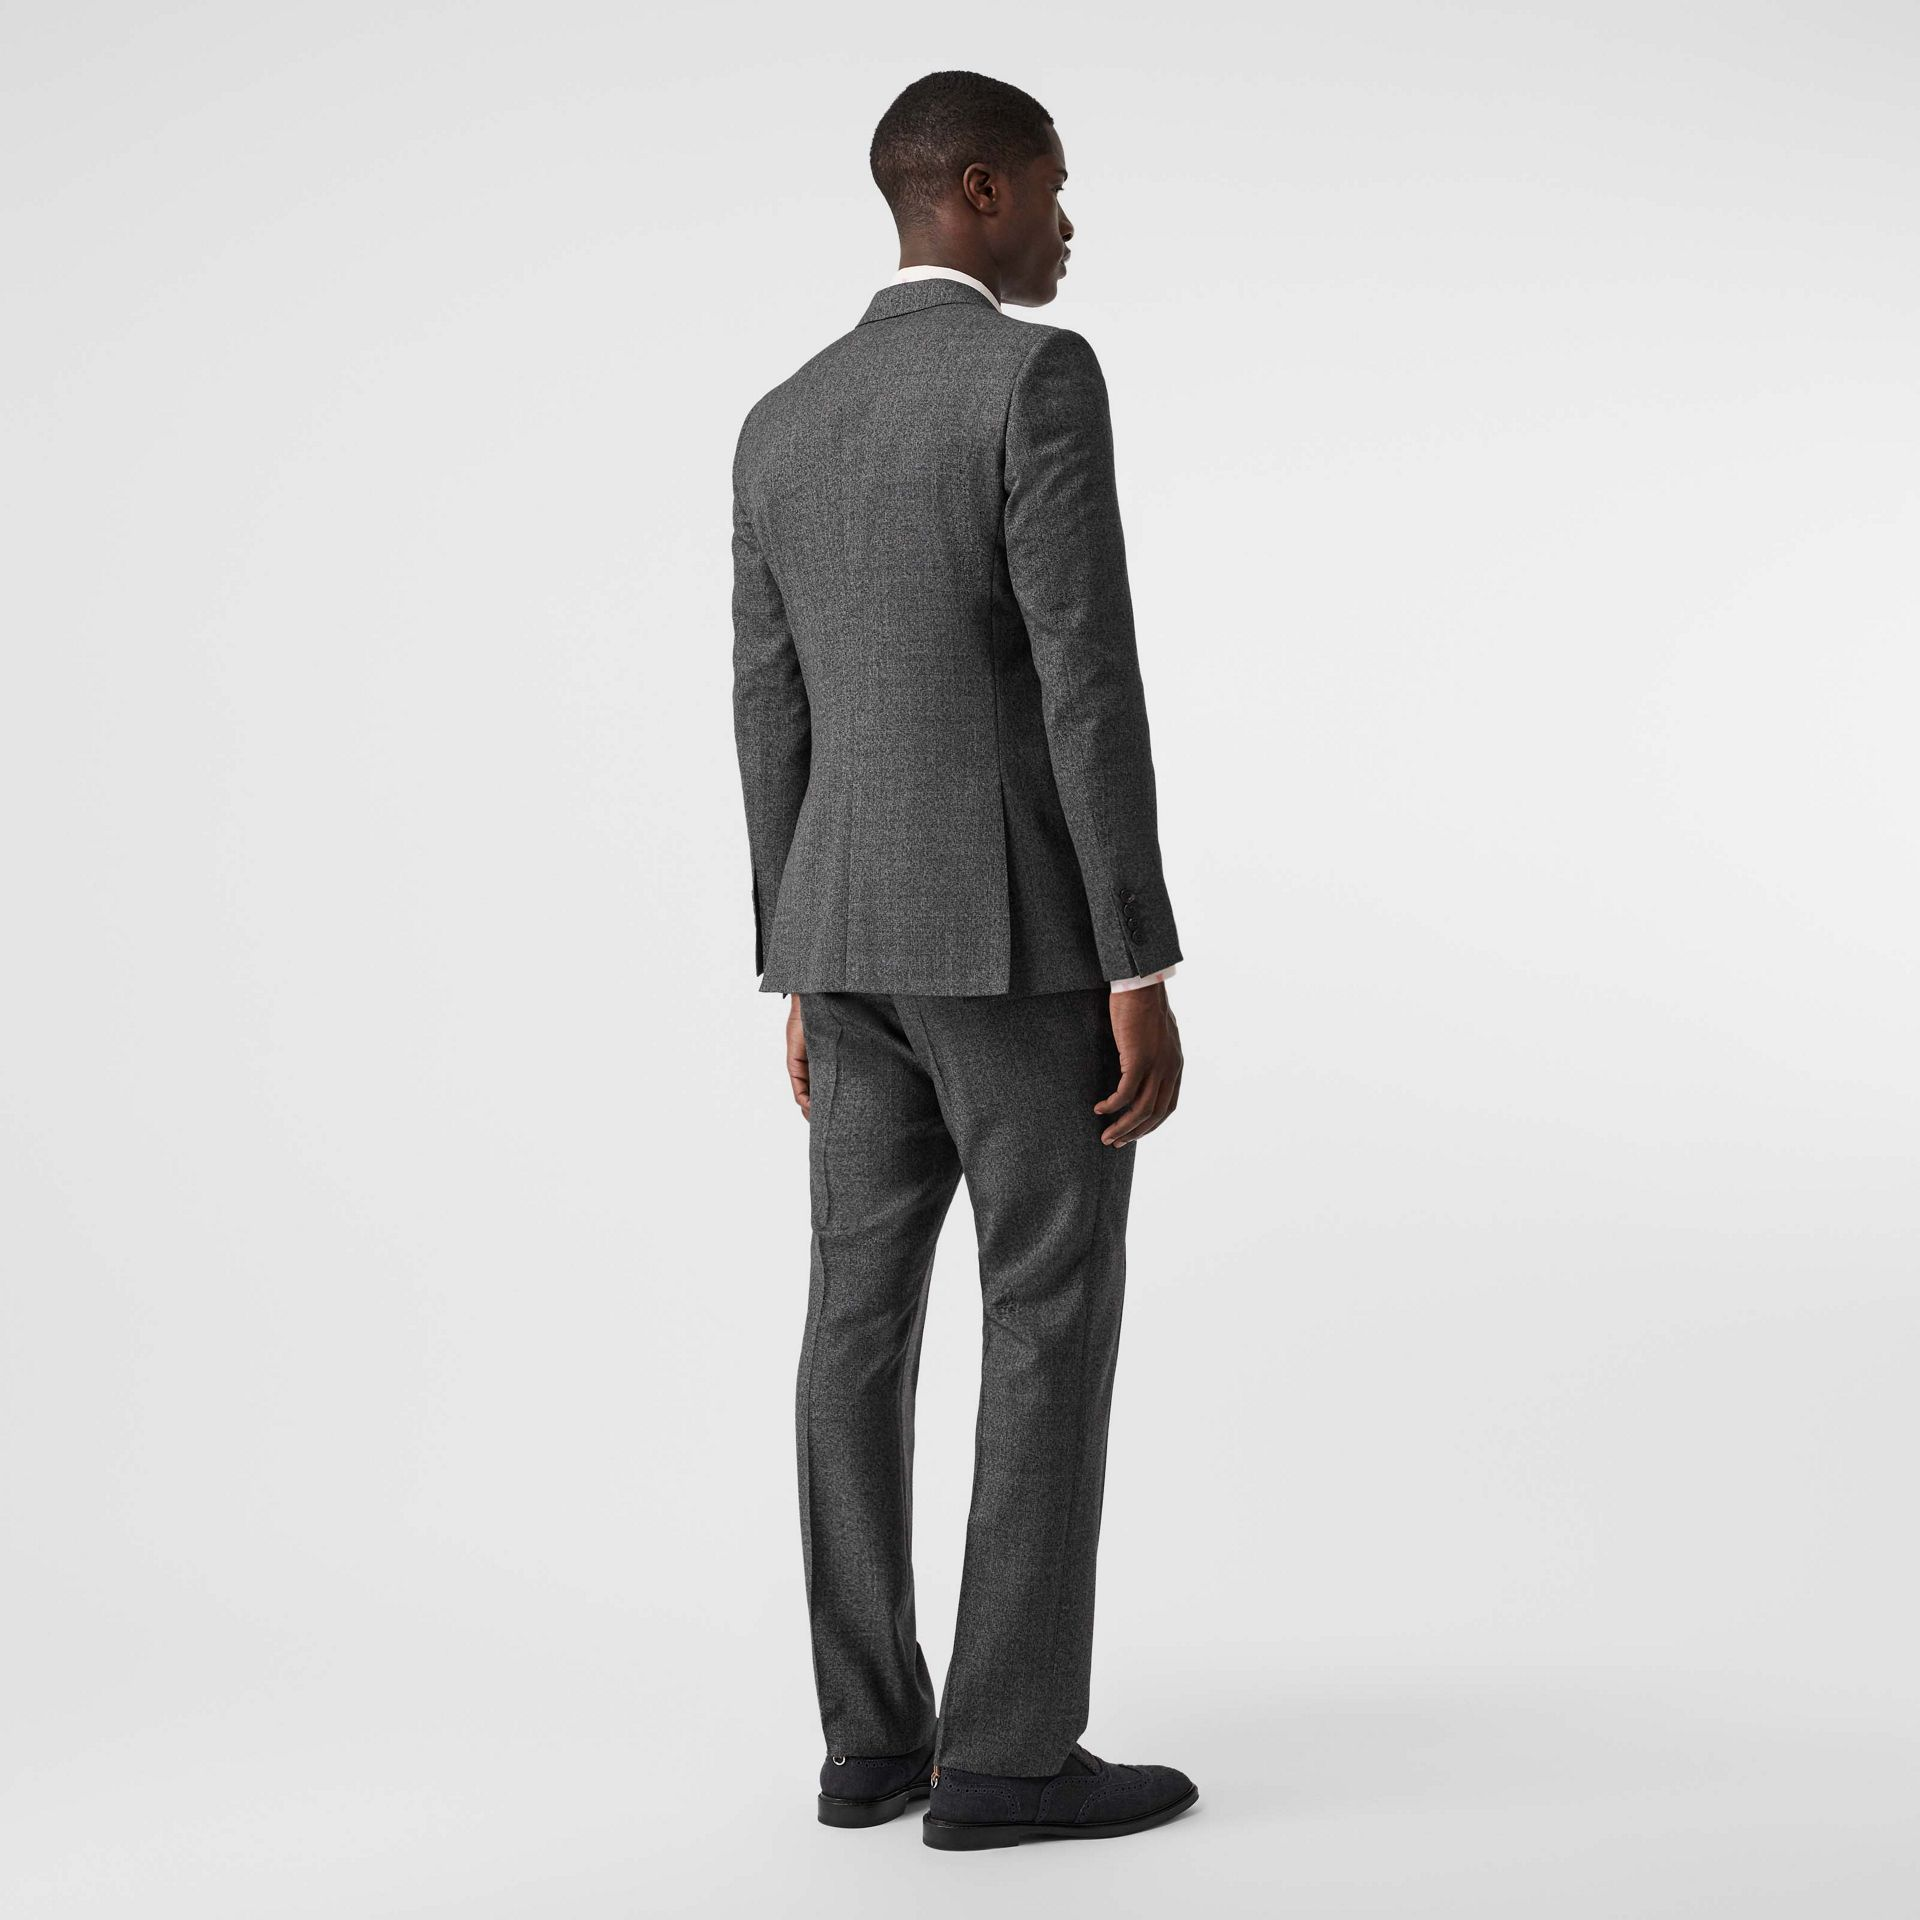 English Fit Sharkskin Wool Suit in Black Melange - Men | Burberry Canada - gallery image 2